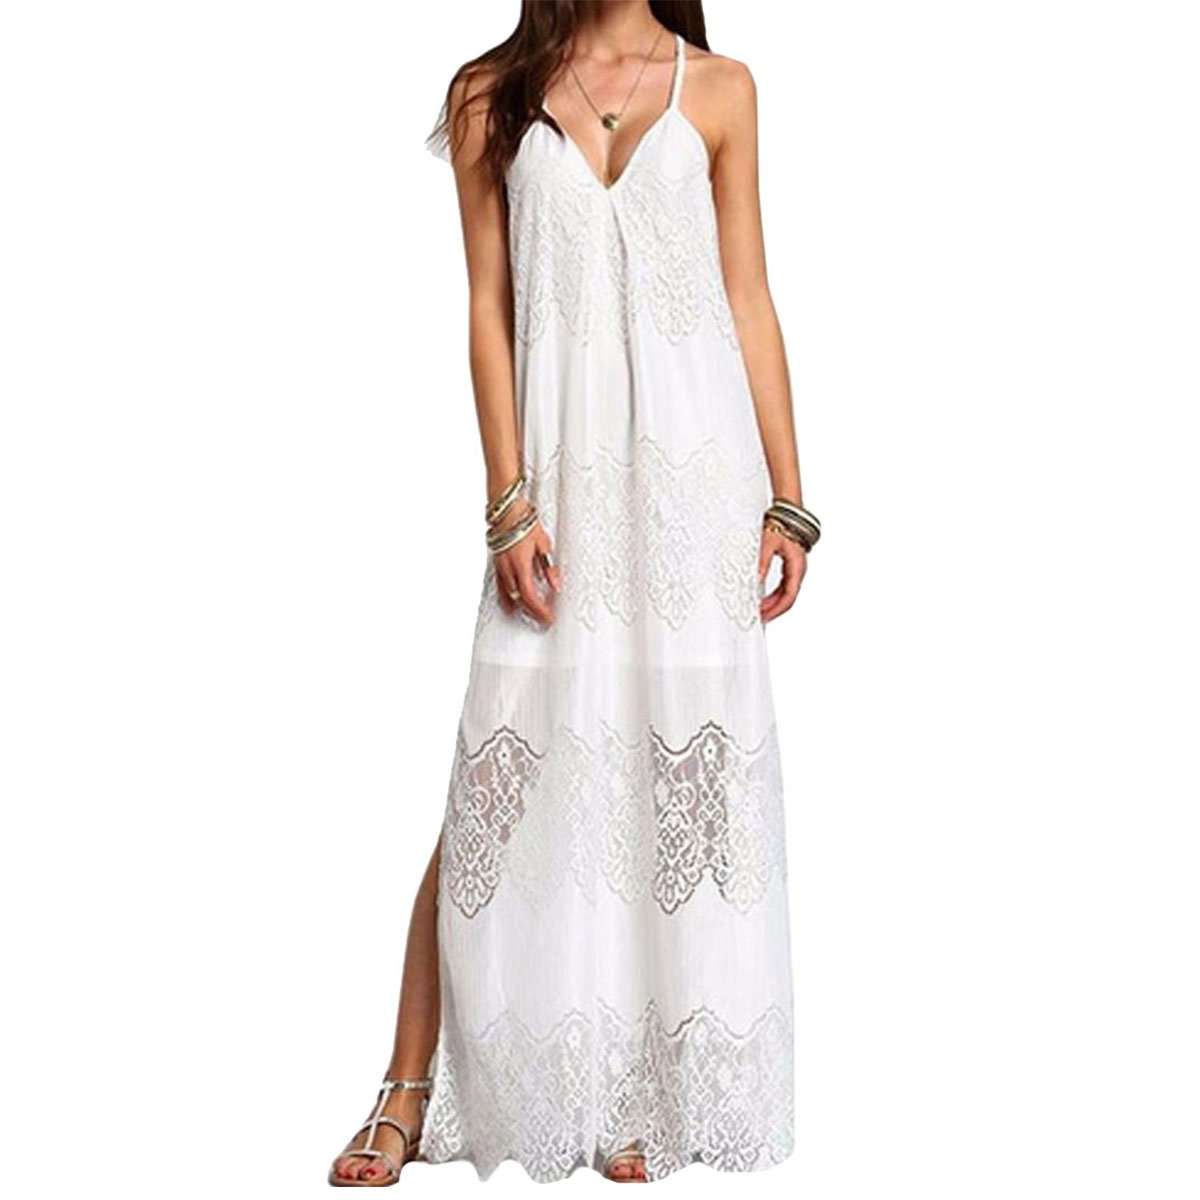 Women Floral Lace Maxi Dress Sexy V Neck Spaghetti Strap Long Dress Full Dresses for Summer Daily Party Beach Travel White 2XL